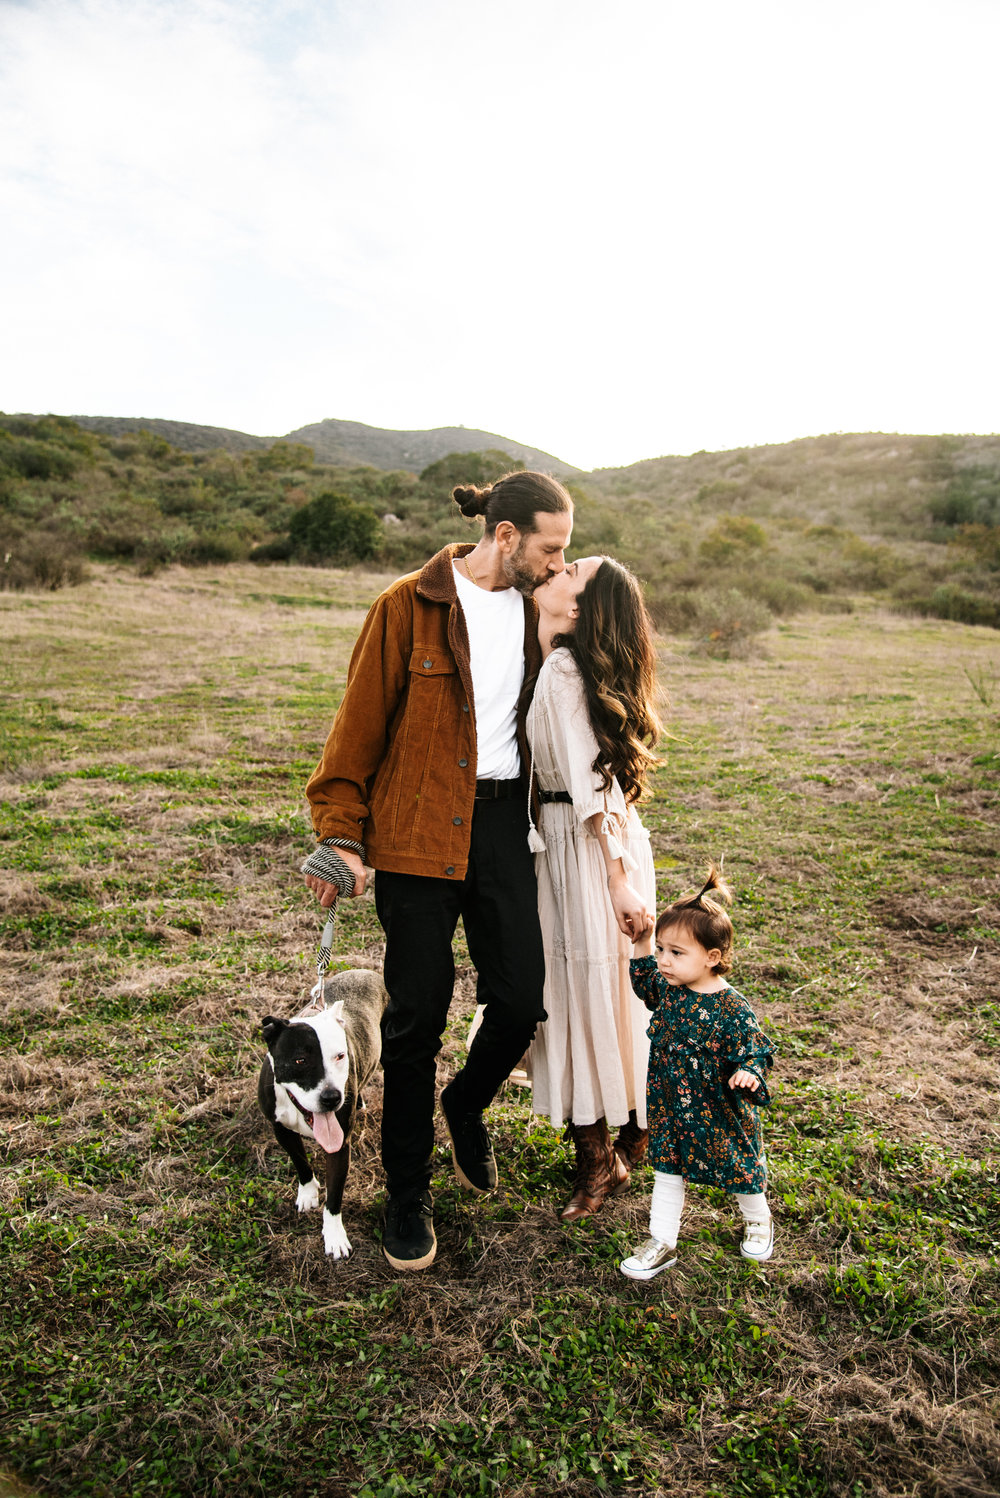 SamErica Studios - San Diego Family Photographer - Family Session at Mission Trails-40.jpg